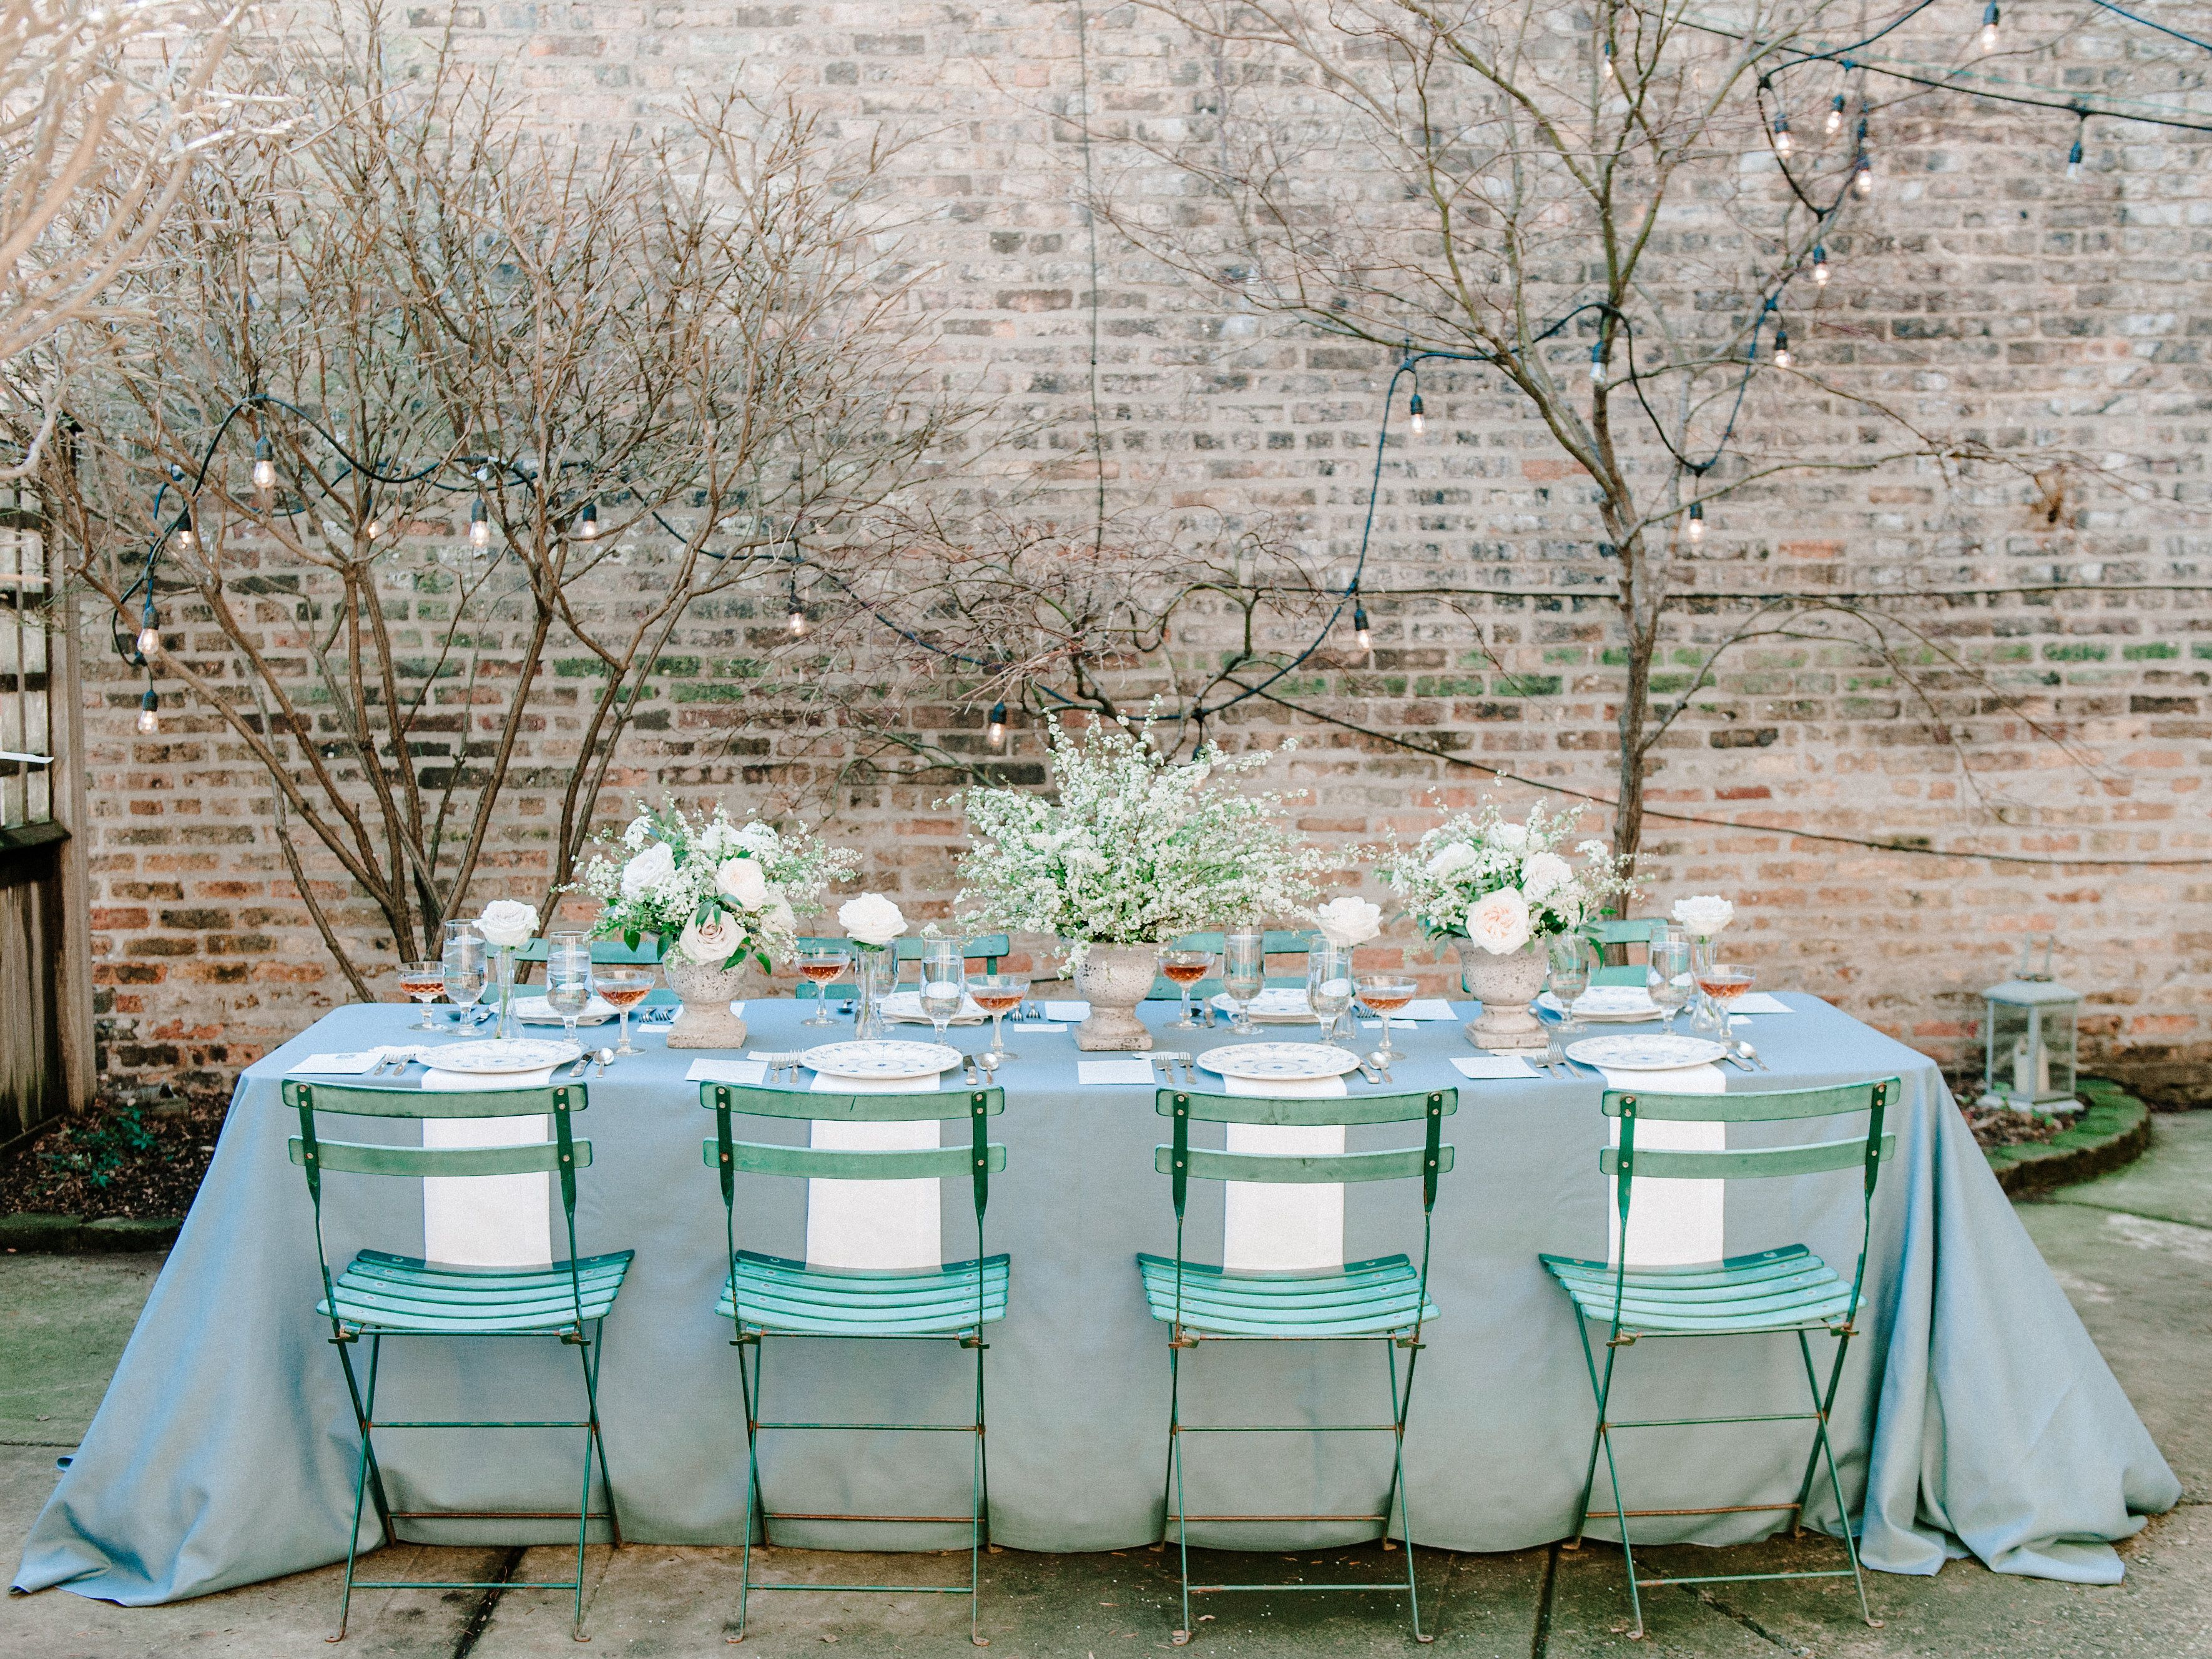 Stonewash Sonoma Table Linen Linen Rentals Wedding Table Linen Runners Chair Covers Bbj Linen Amazing Gardens Chicago Wedding Venues Outdoor Party Decorations